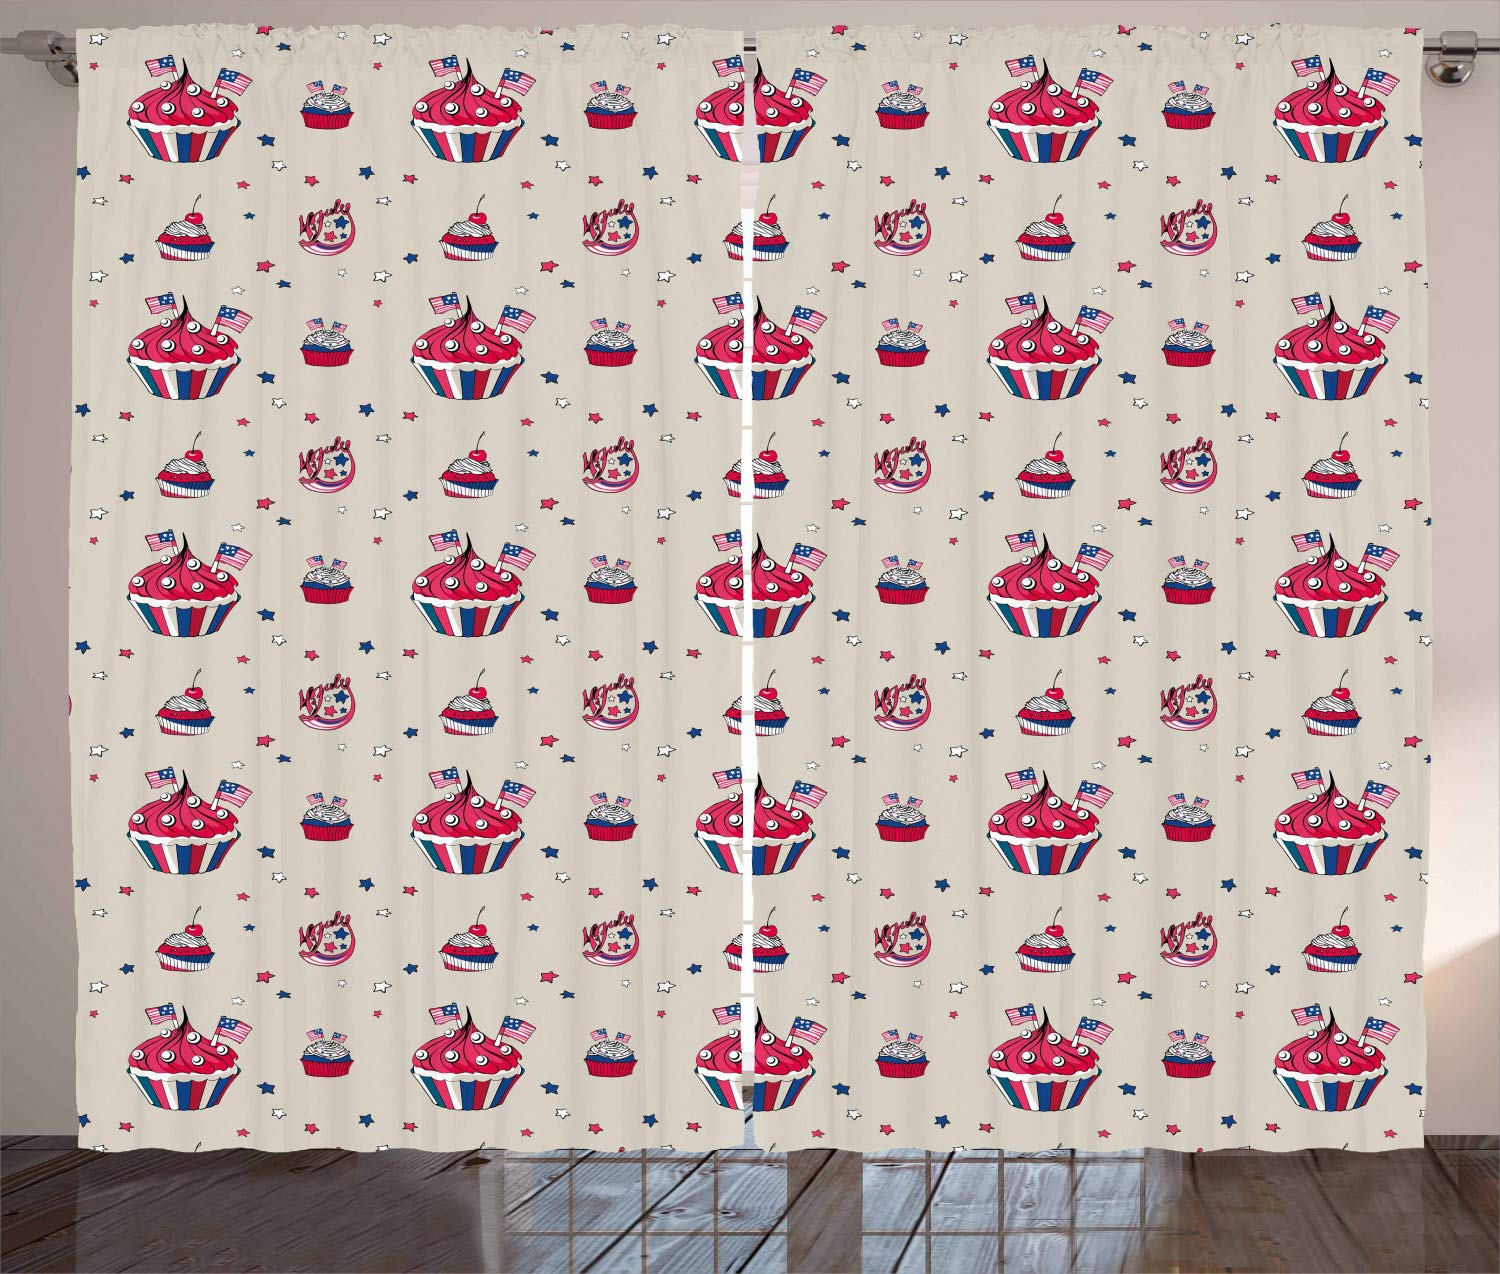 Ambesonne USA Curtains, Cupcakes with National Flags Cafe Yummy Homeland July Fourth Caricature, Living Room Bedroom Window Drapes 2 Panel Set, 108'' X 108'', Beige Navy Blue Red by Ambesonne